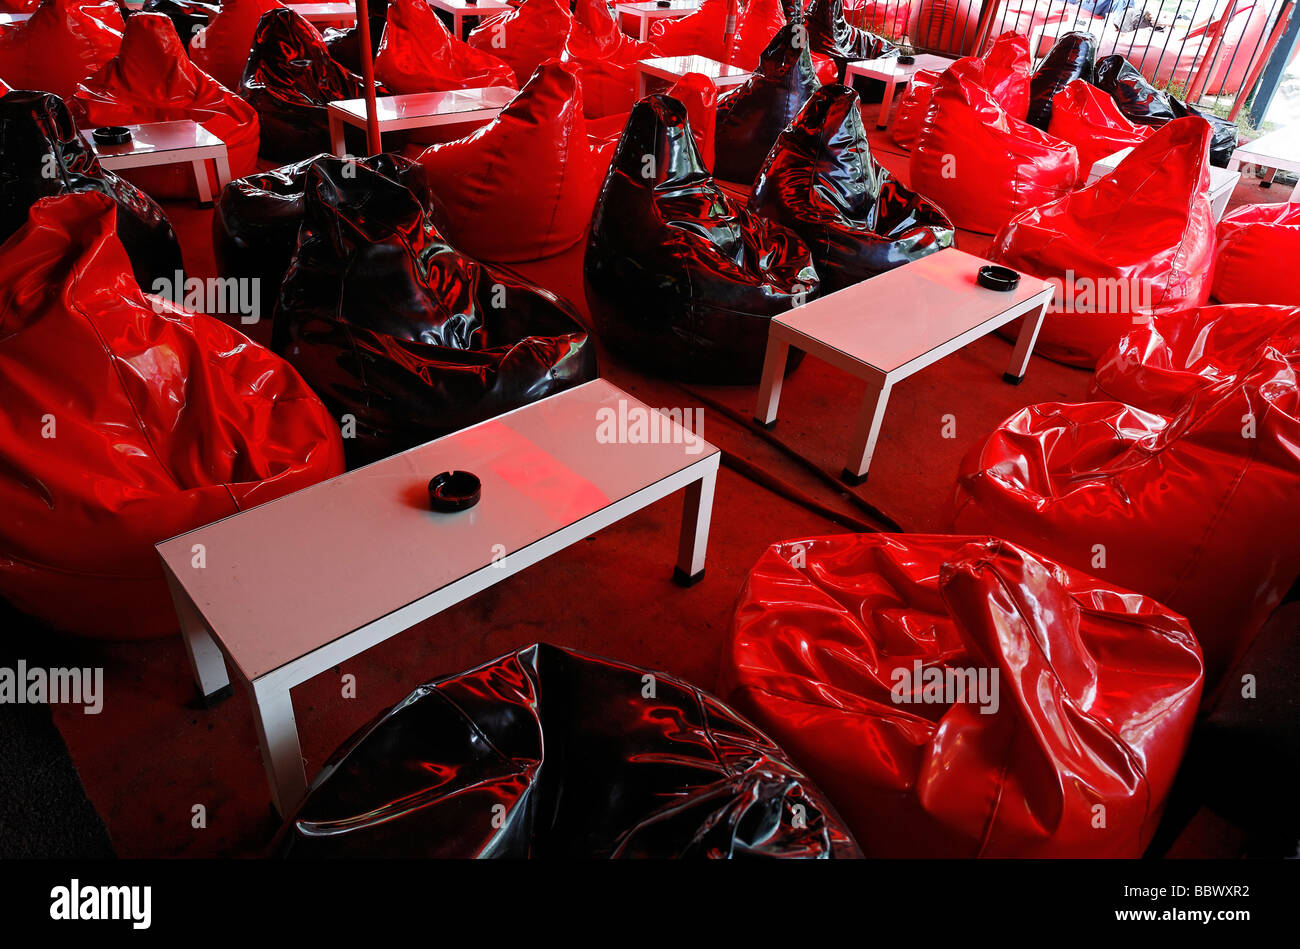 Room with beanbag chairs as seats to relax, bar for smokers of Turkish water pipes, Narghile, Istanbul, Turkey - Stock Image